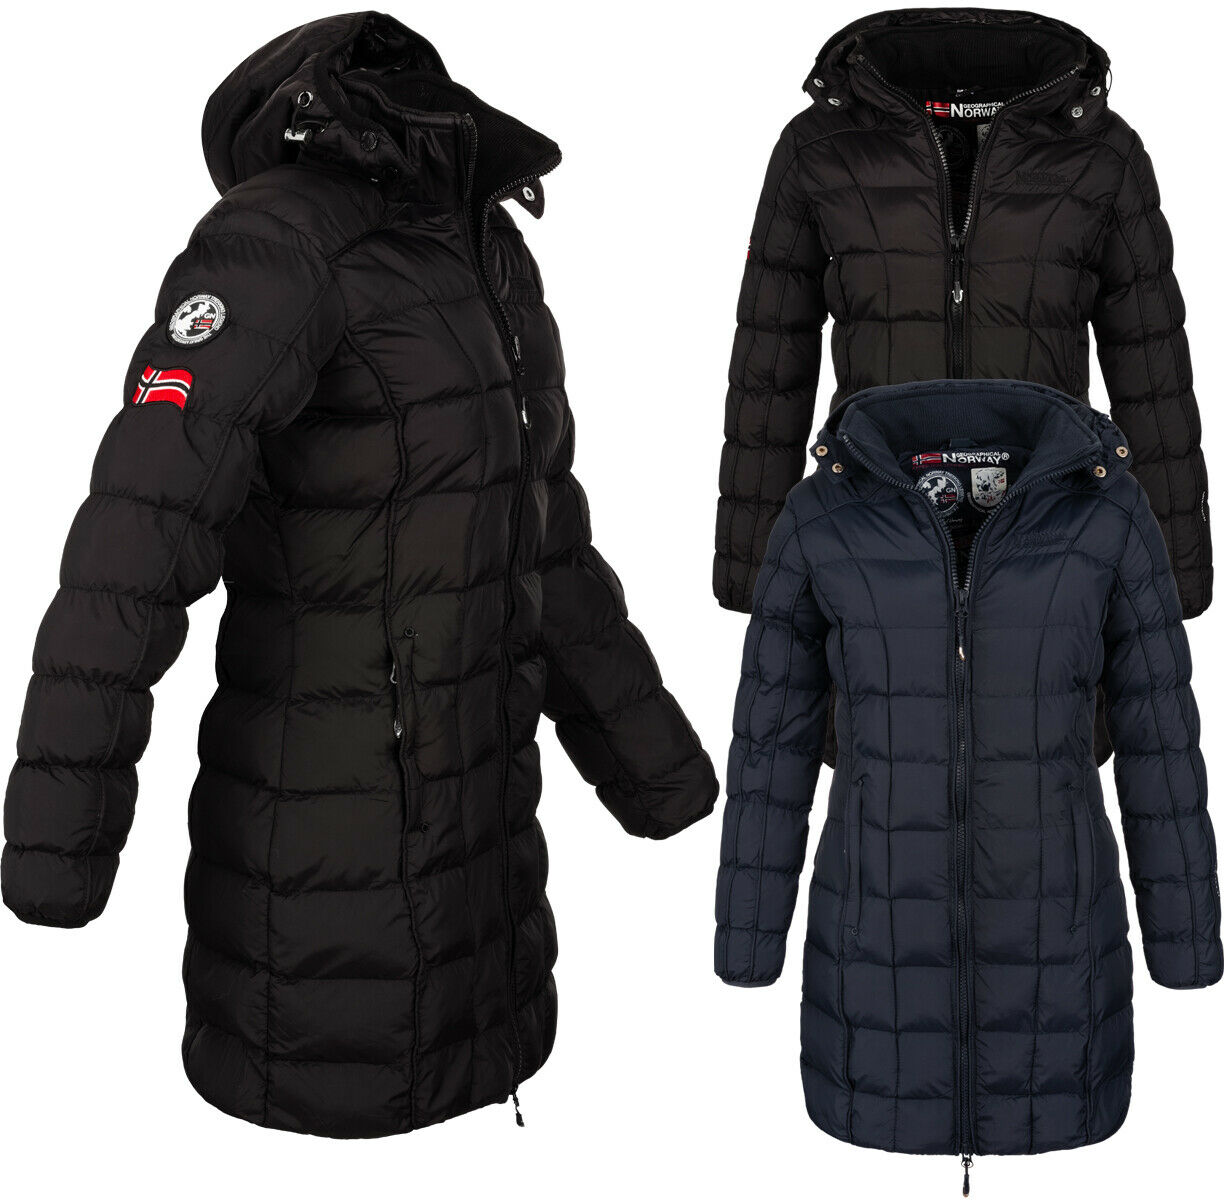 Geographical Norway  Damen Winter Jacke FVSB mantel parka Steppjacke langejacke